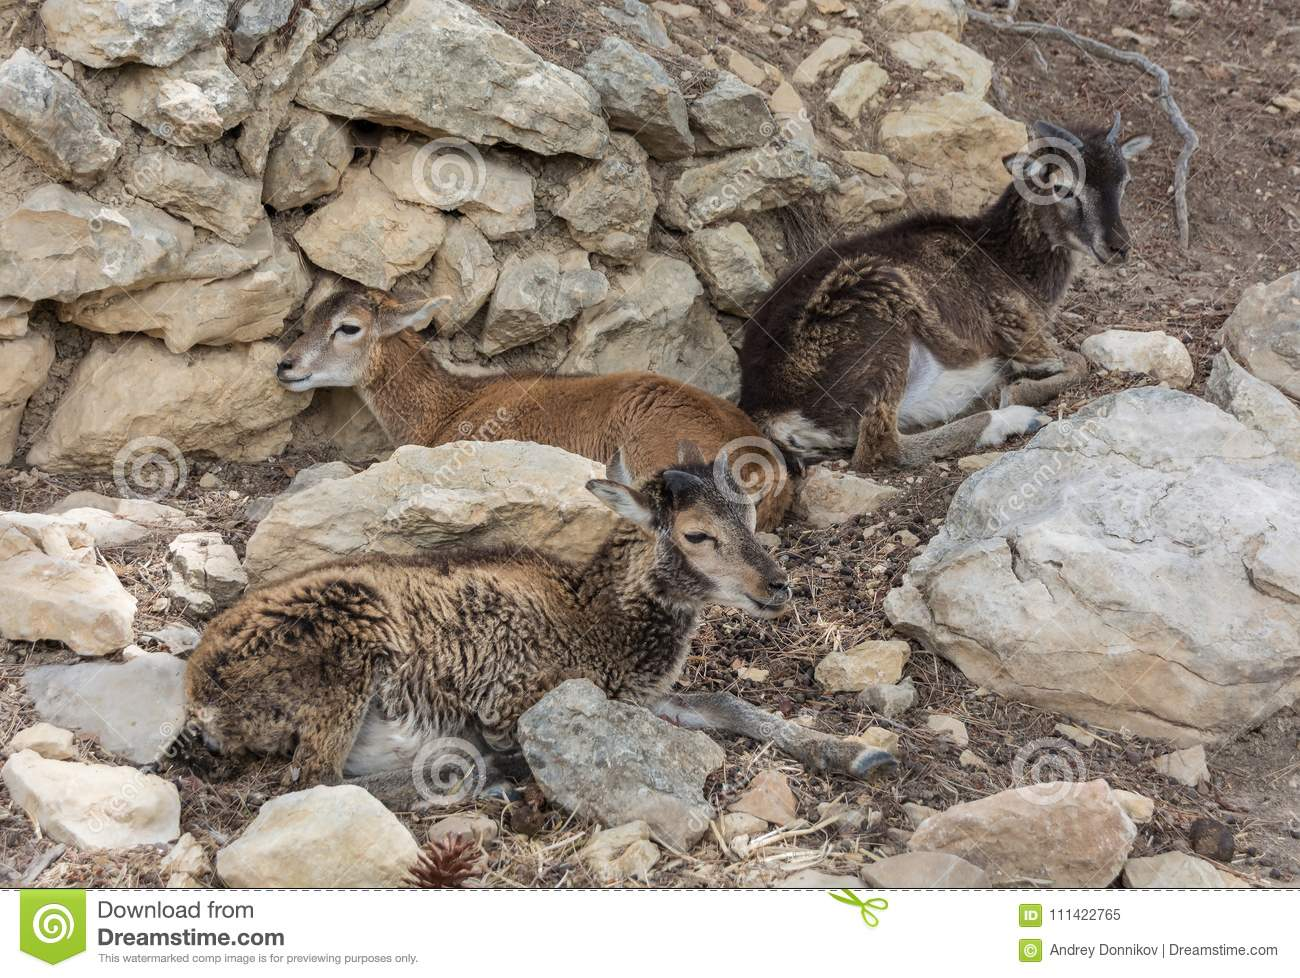 Group of young Mouflons, Ovis gmelini or Ovis orientalis lying on the rocks